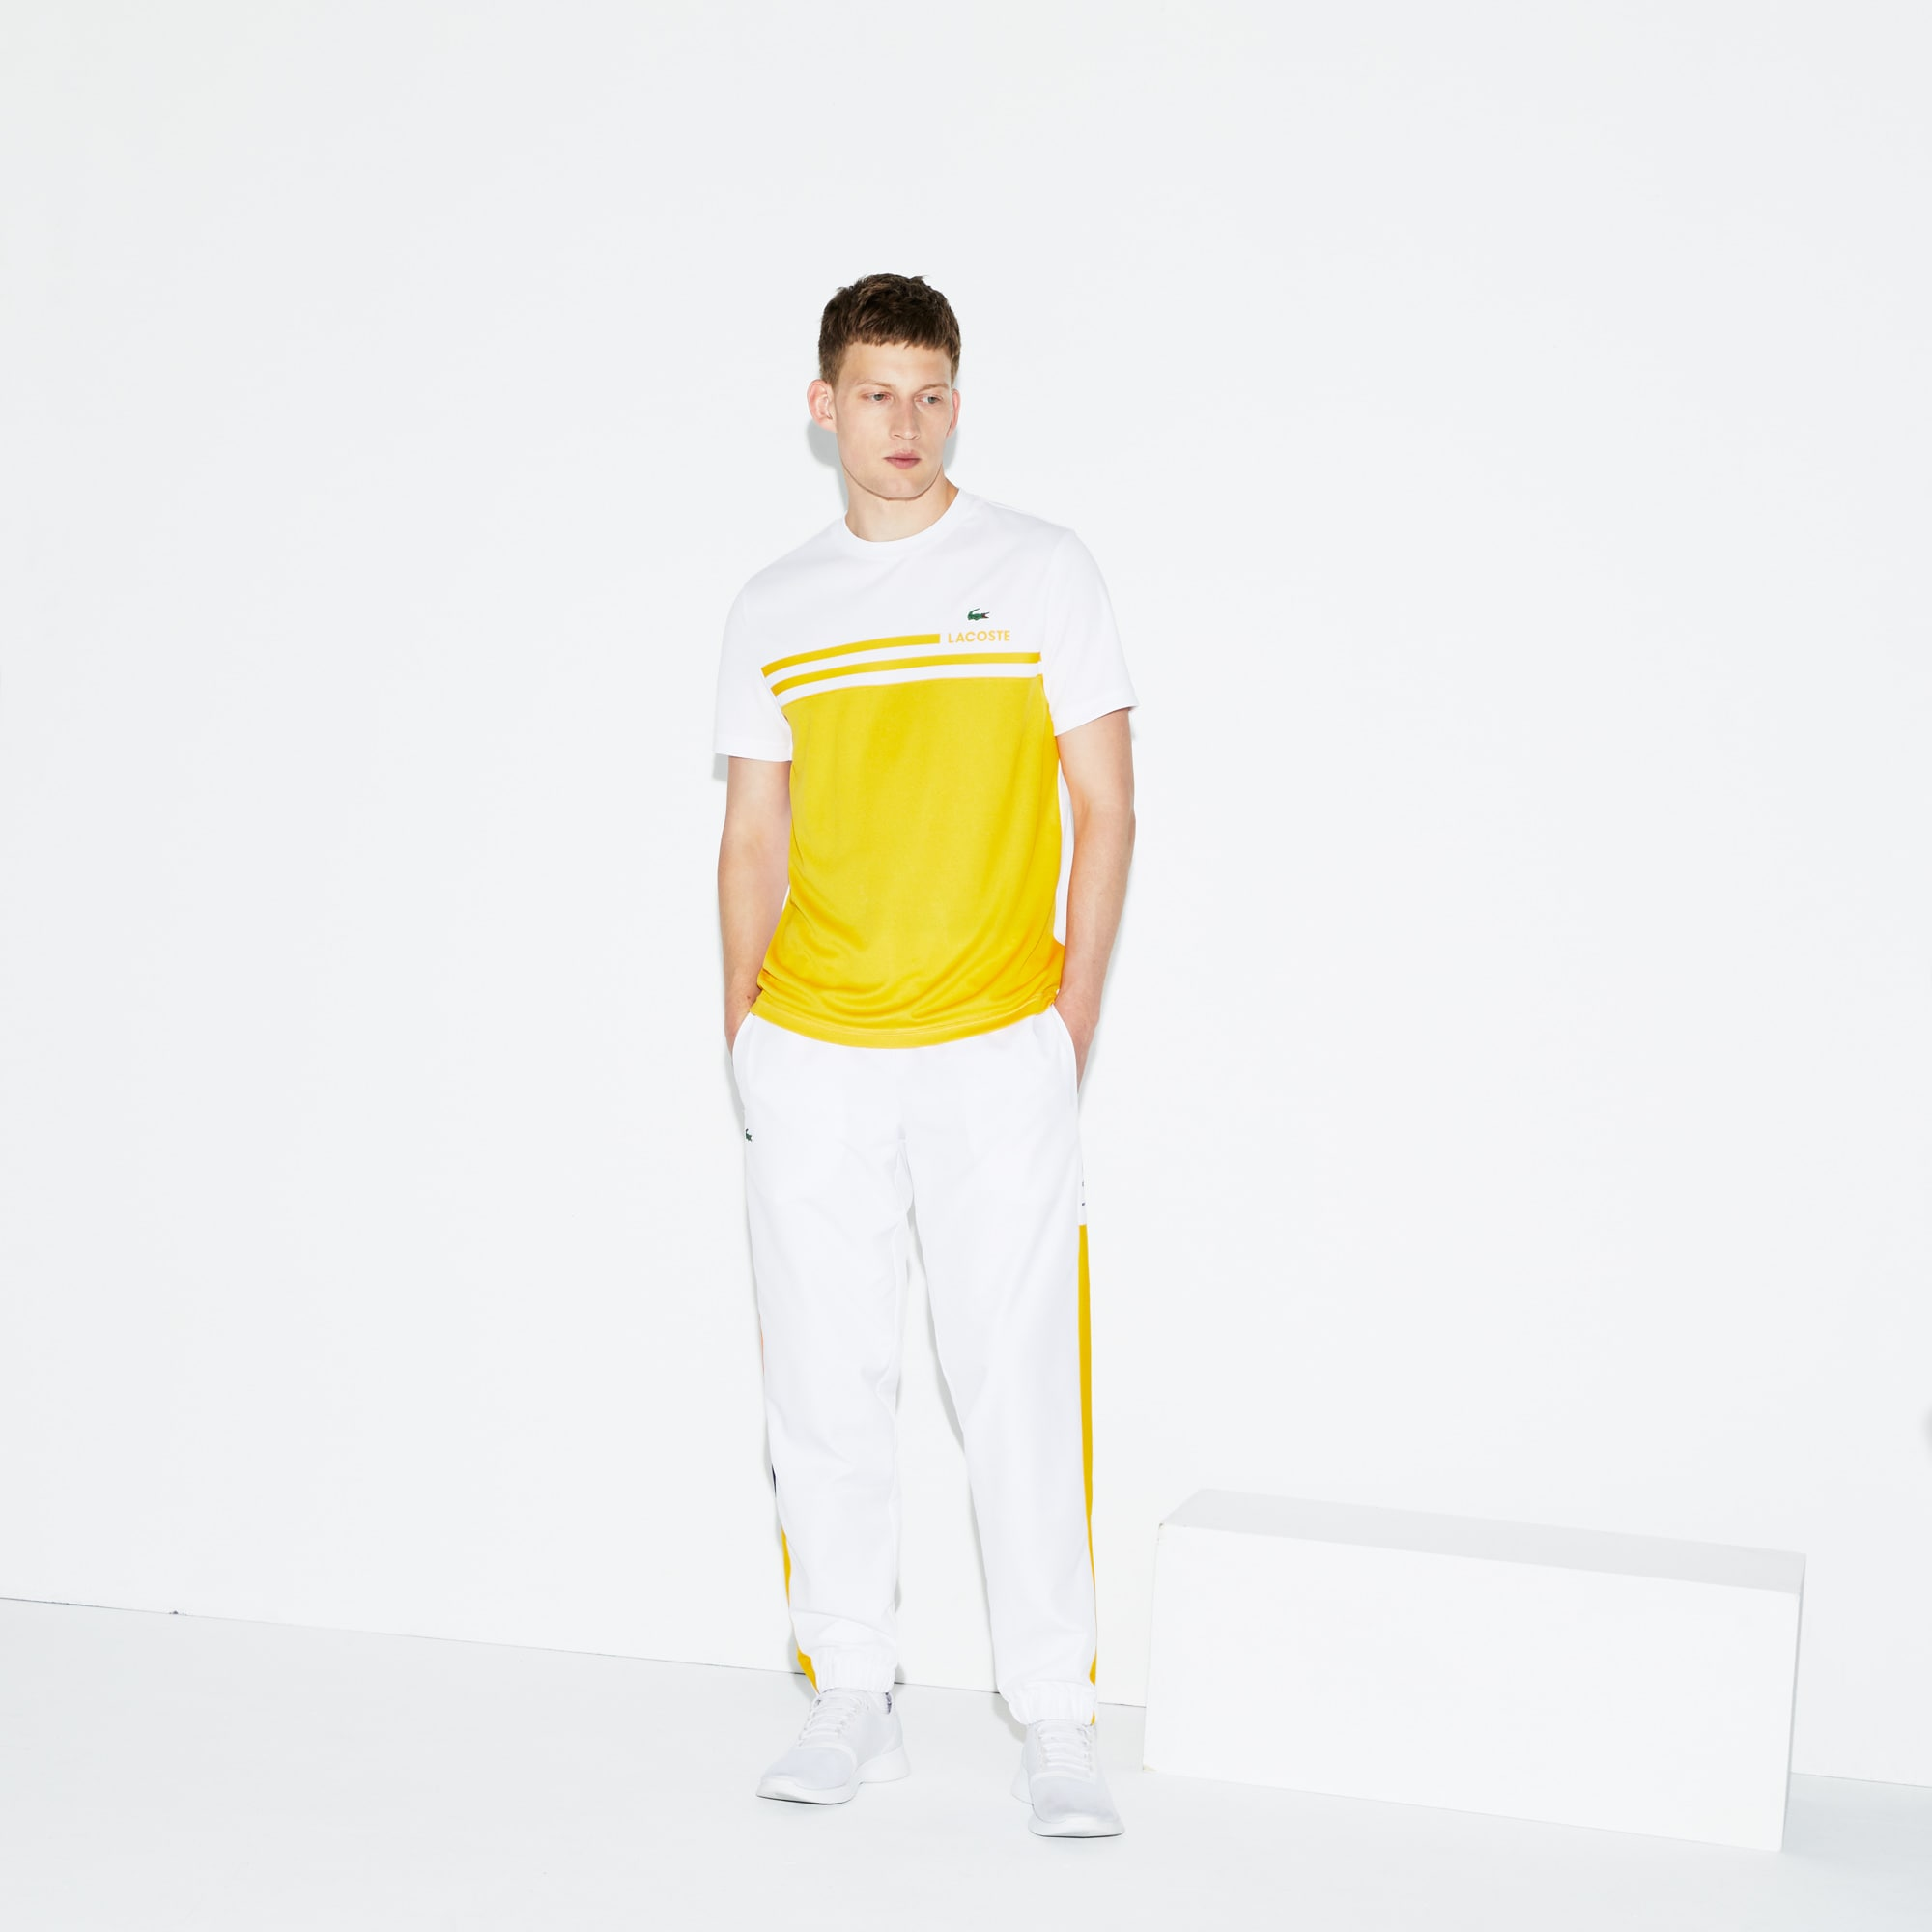 Herren-Trainingshose im Colorblock-Design LACOSTE SPORT TENNIS